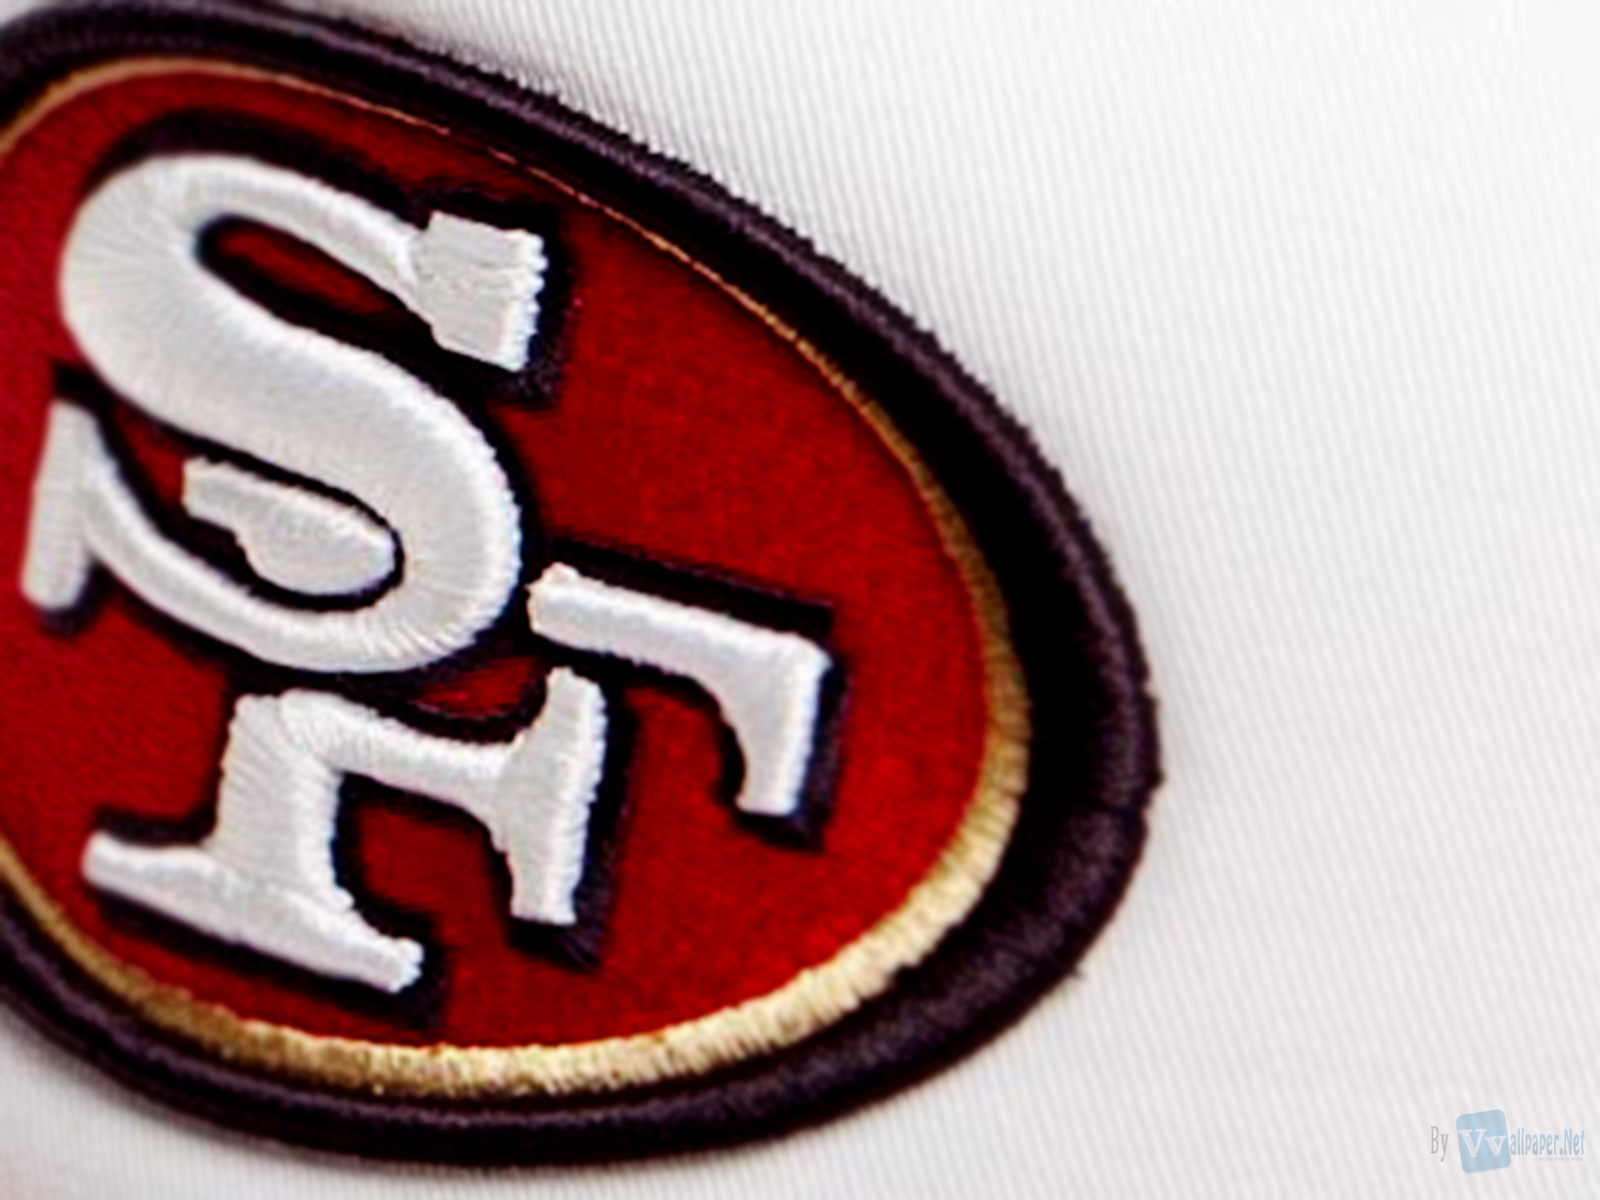 http://2.bp.blogspot.com/-9AsBq_7HsoQ/UIGZVtVsFHI/AAAAAAAAFiw/pStSbHnUk_A/s1600/SF-49ers-Nfl-Team-Logo-Close-Up-HD-Wallpaper_by_Vvallpaper.Net.jpg